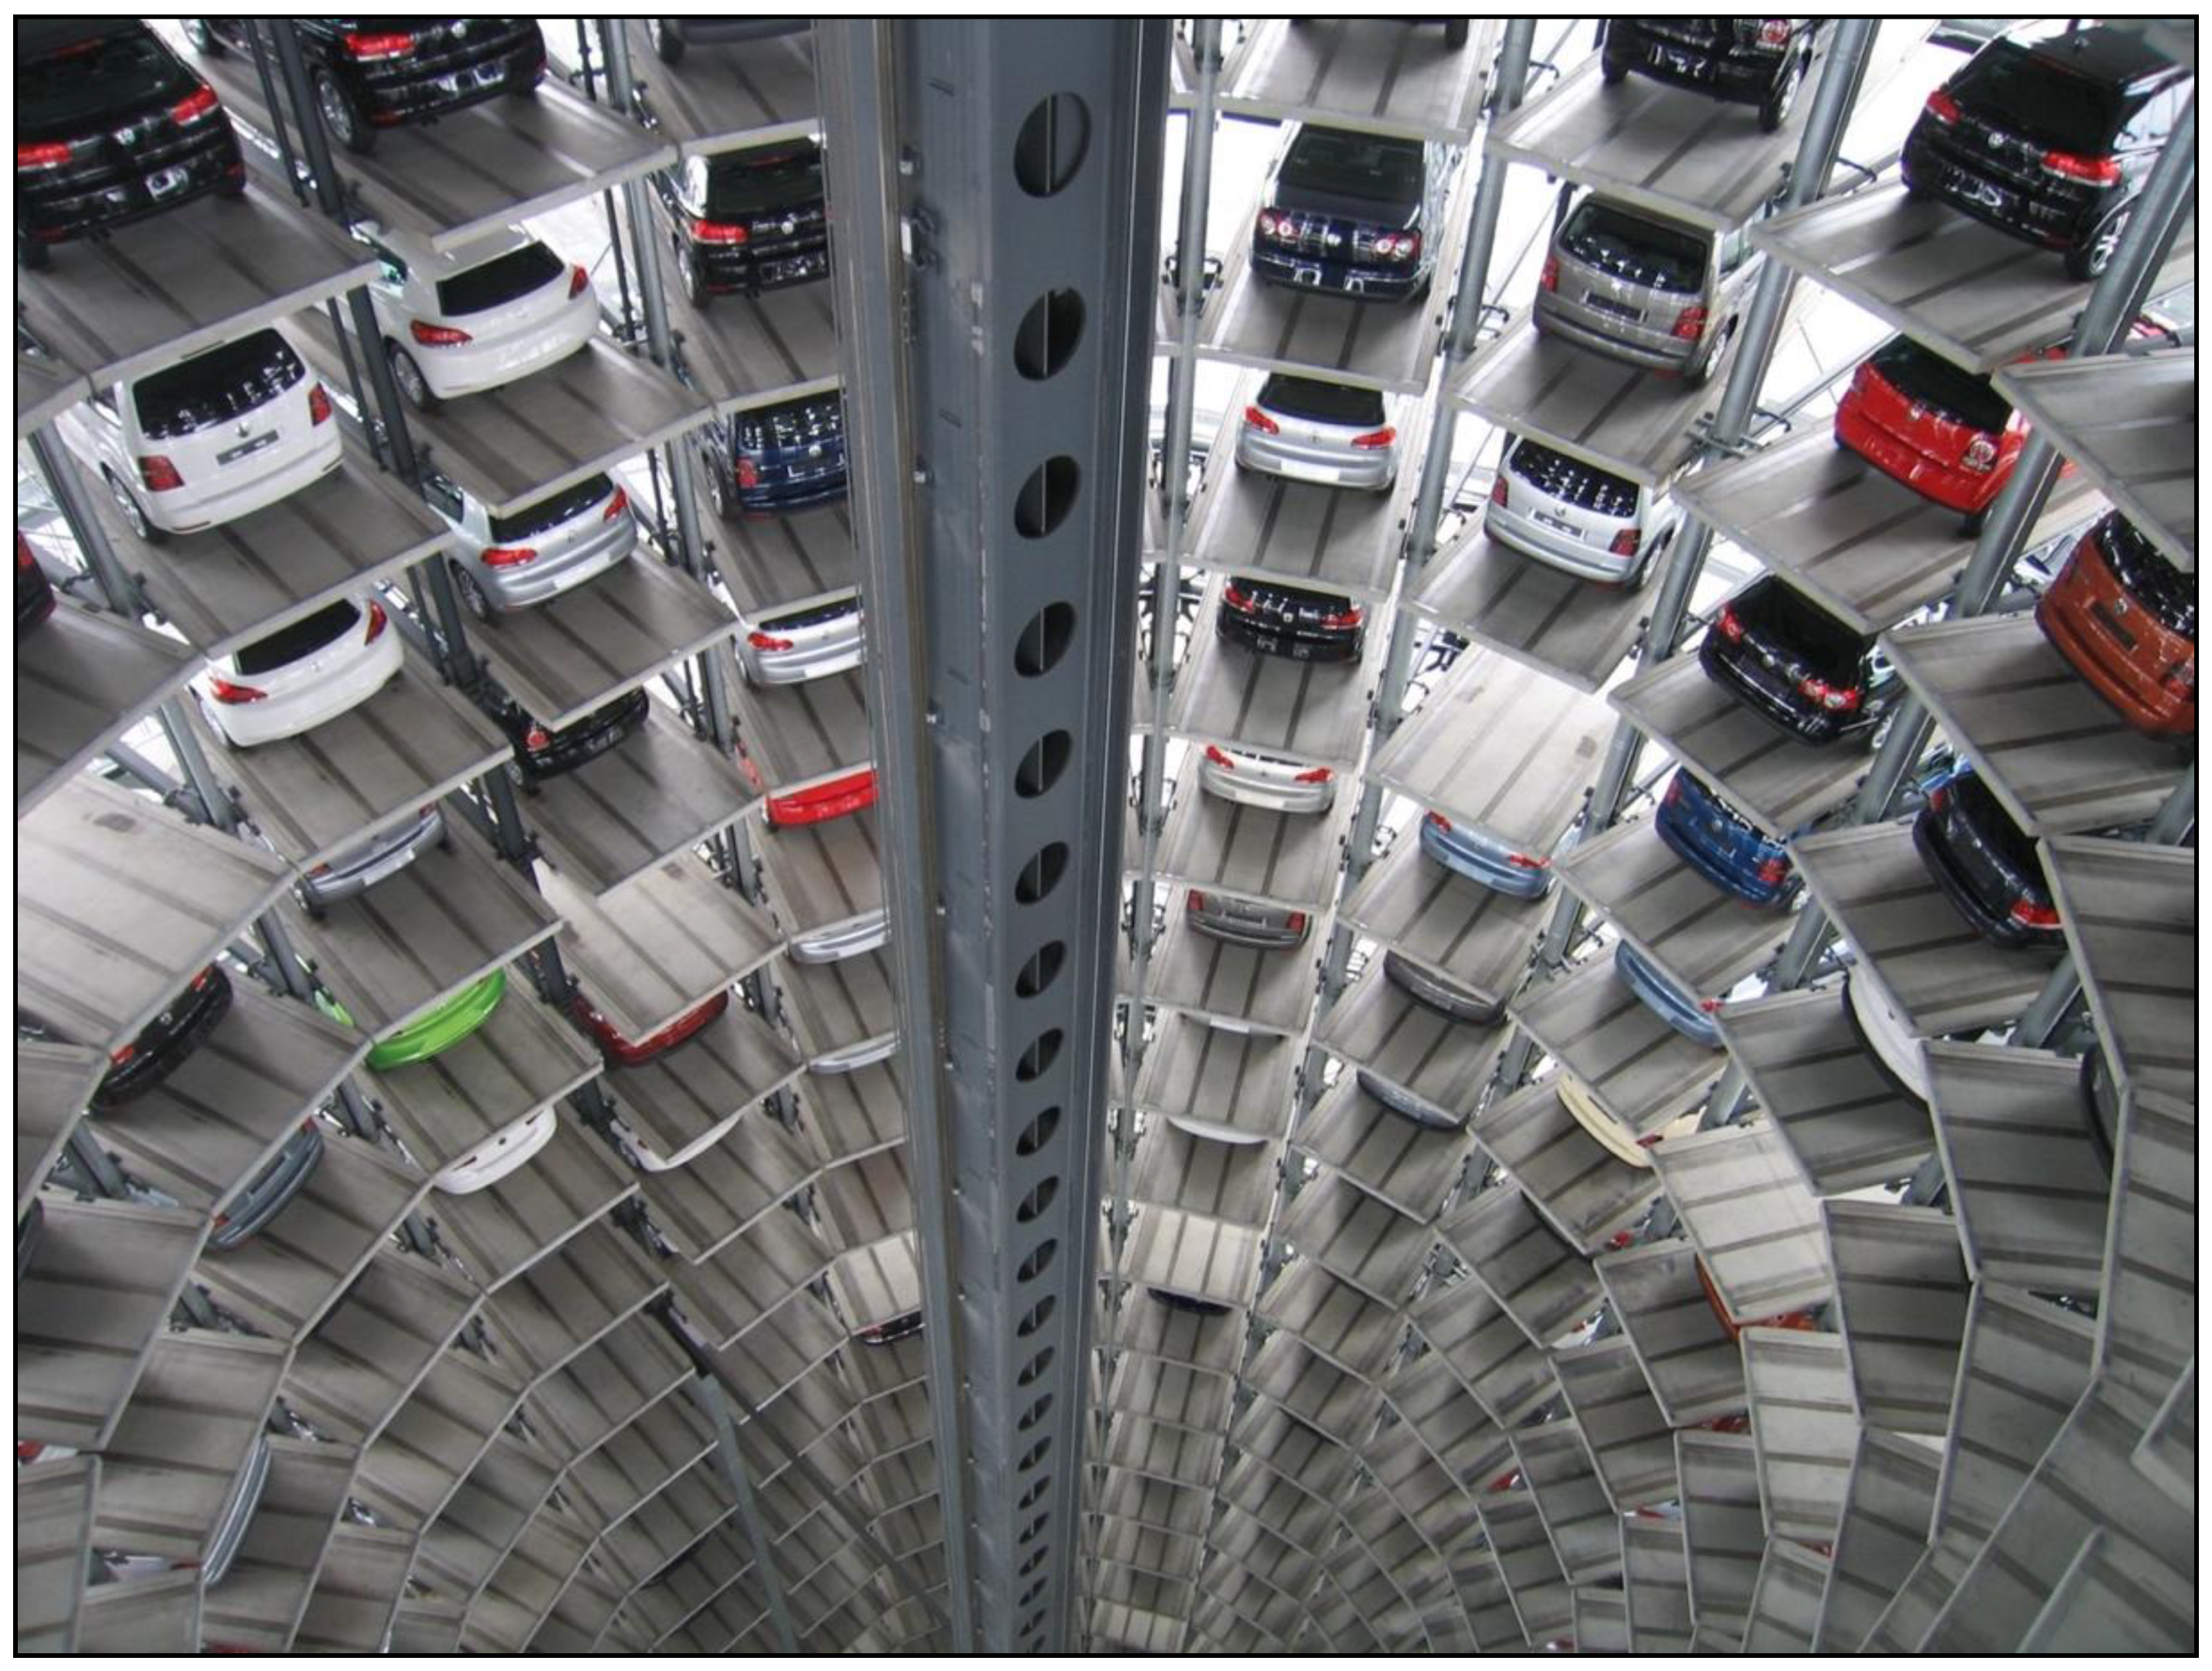 Robot Parking Lot Conserve Room Yet There is a DILEMMA – Power Use